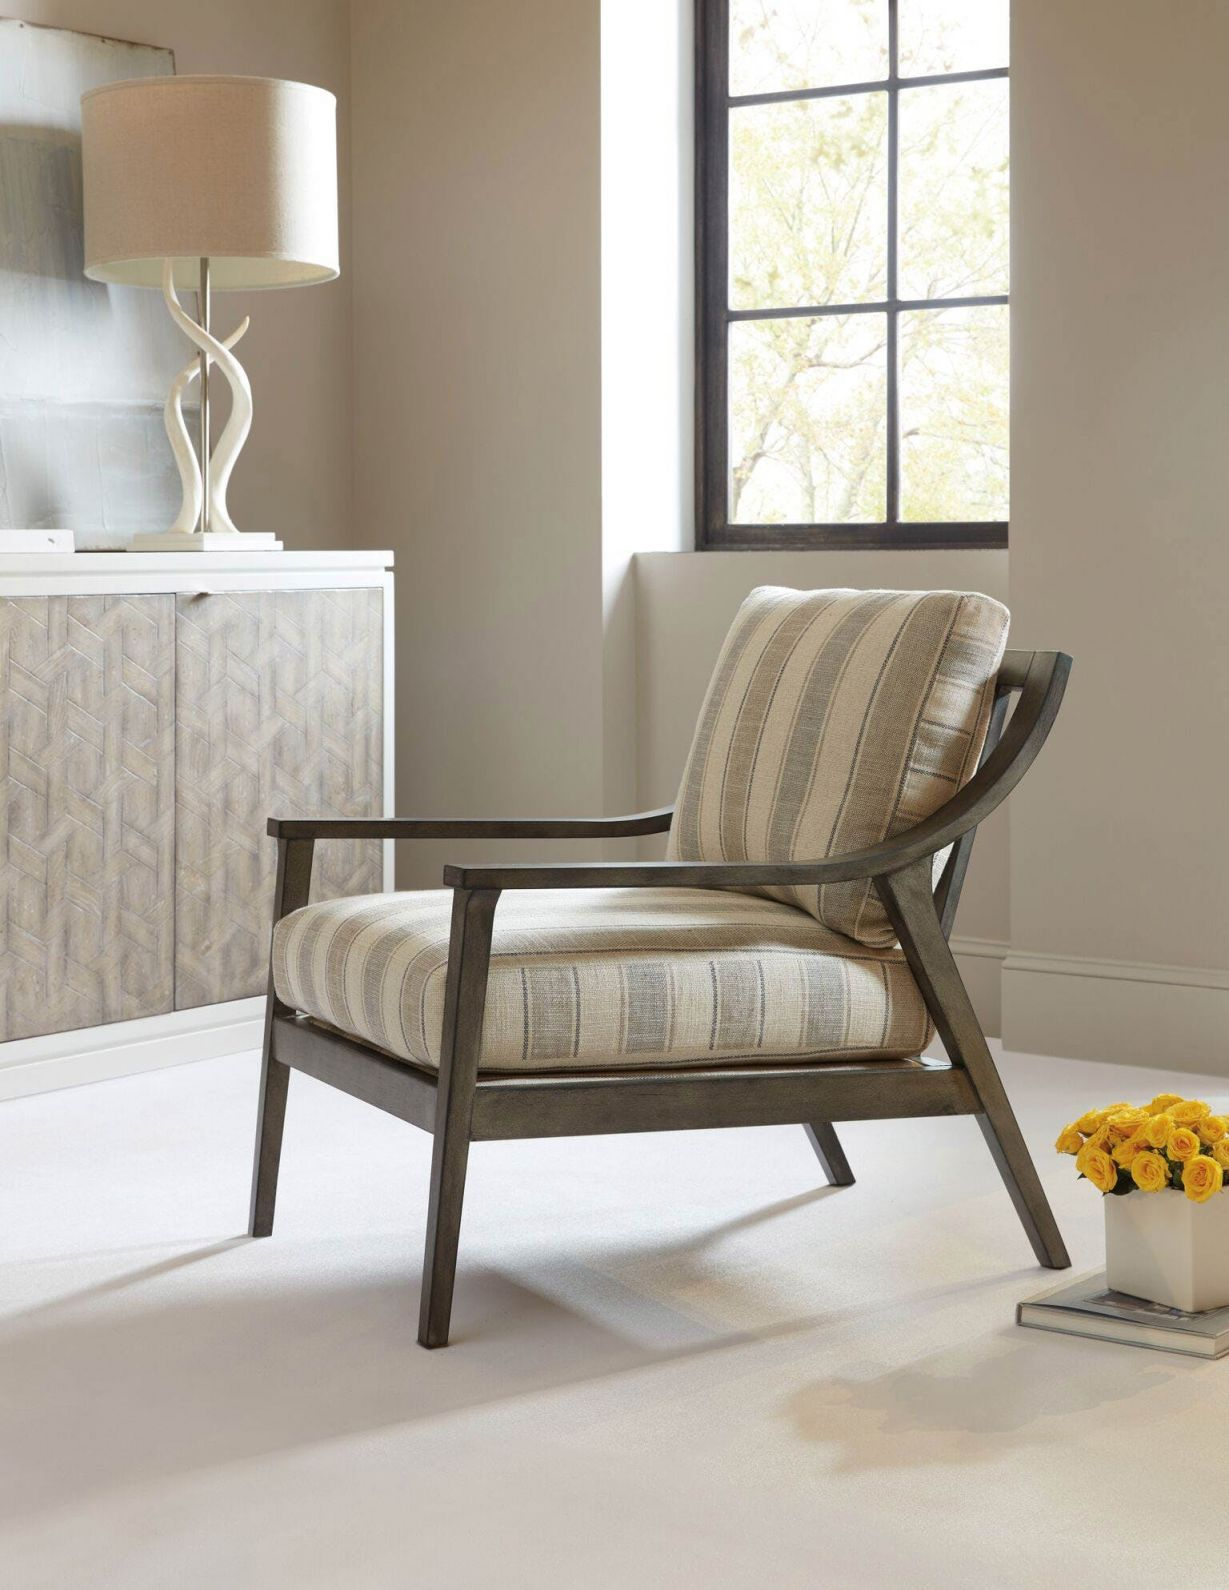 Updated Classics & Trendy Transitional Home Furnishings | Sam Moore within Awesome Chair Living Room Furniture